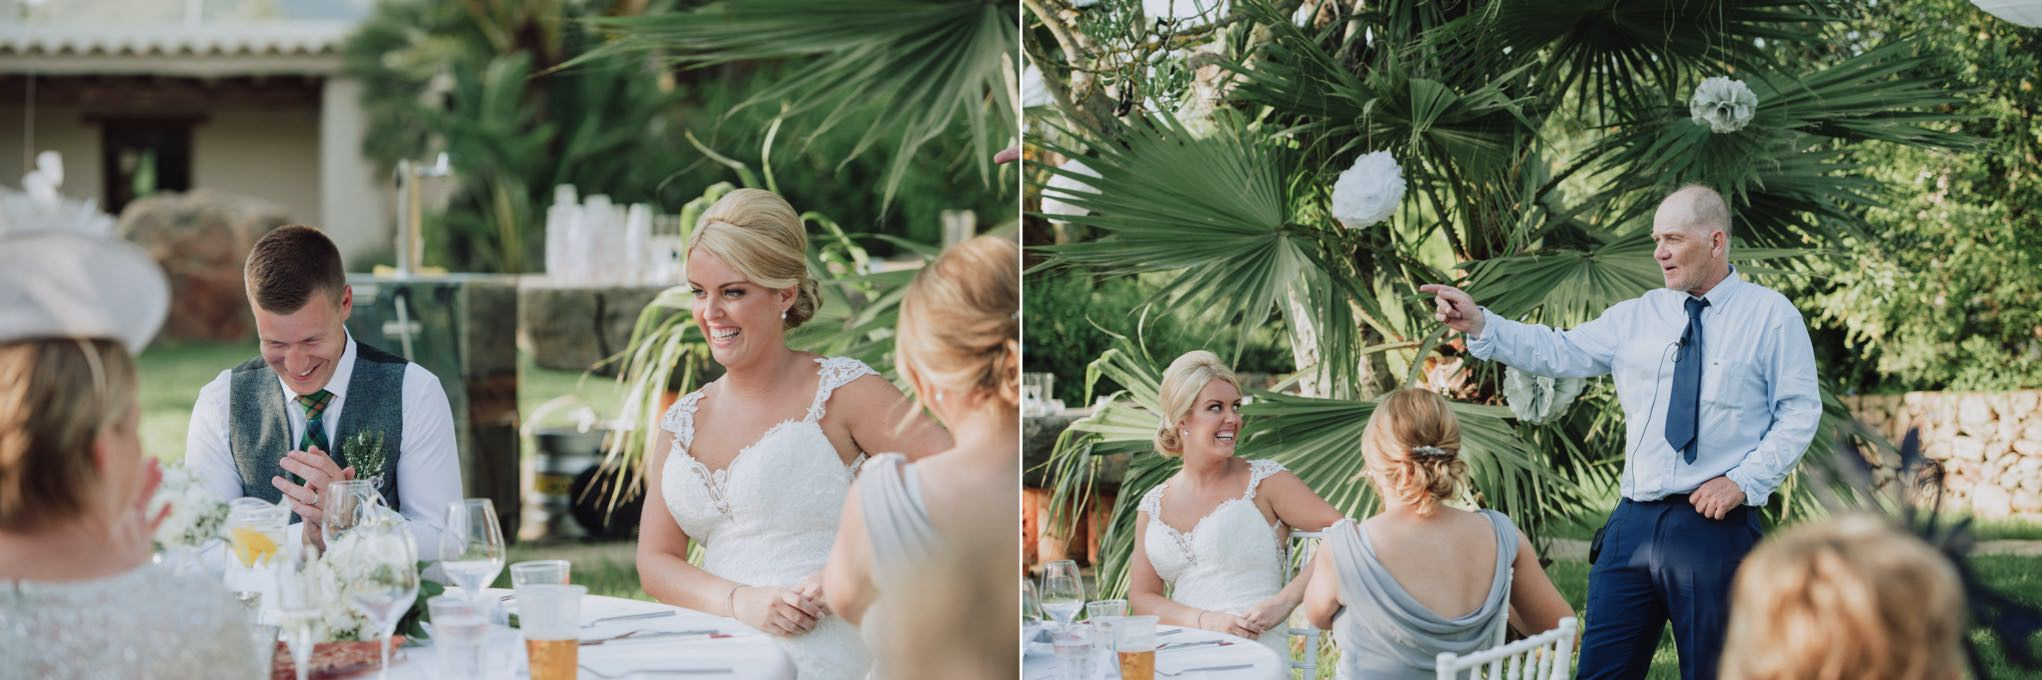 Can gall; ibiza wedding; donna murray photography68